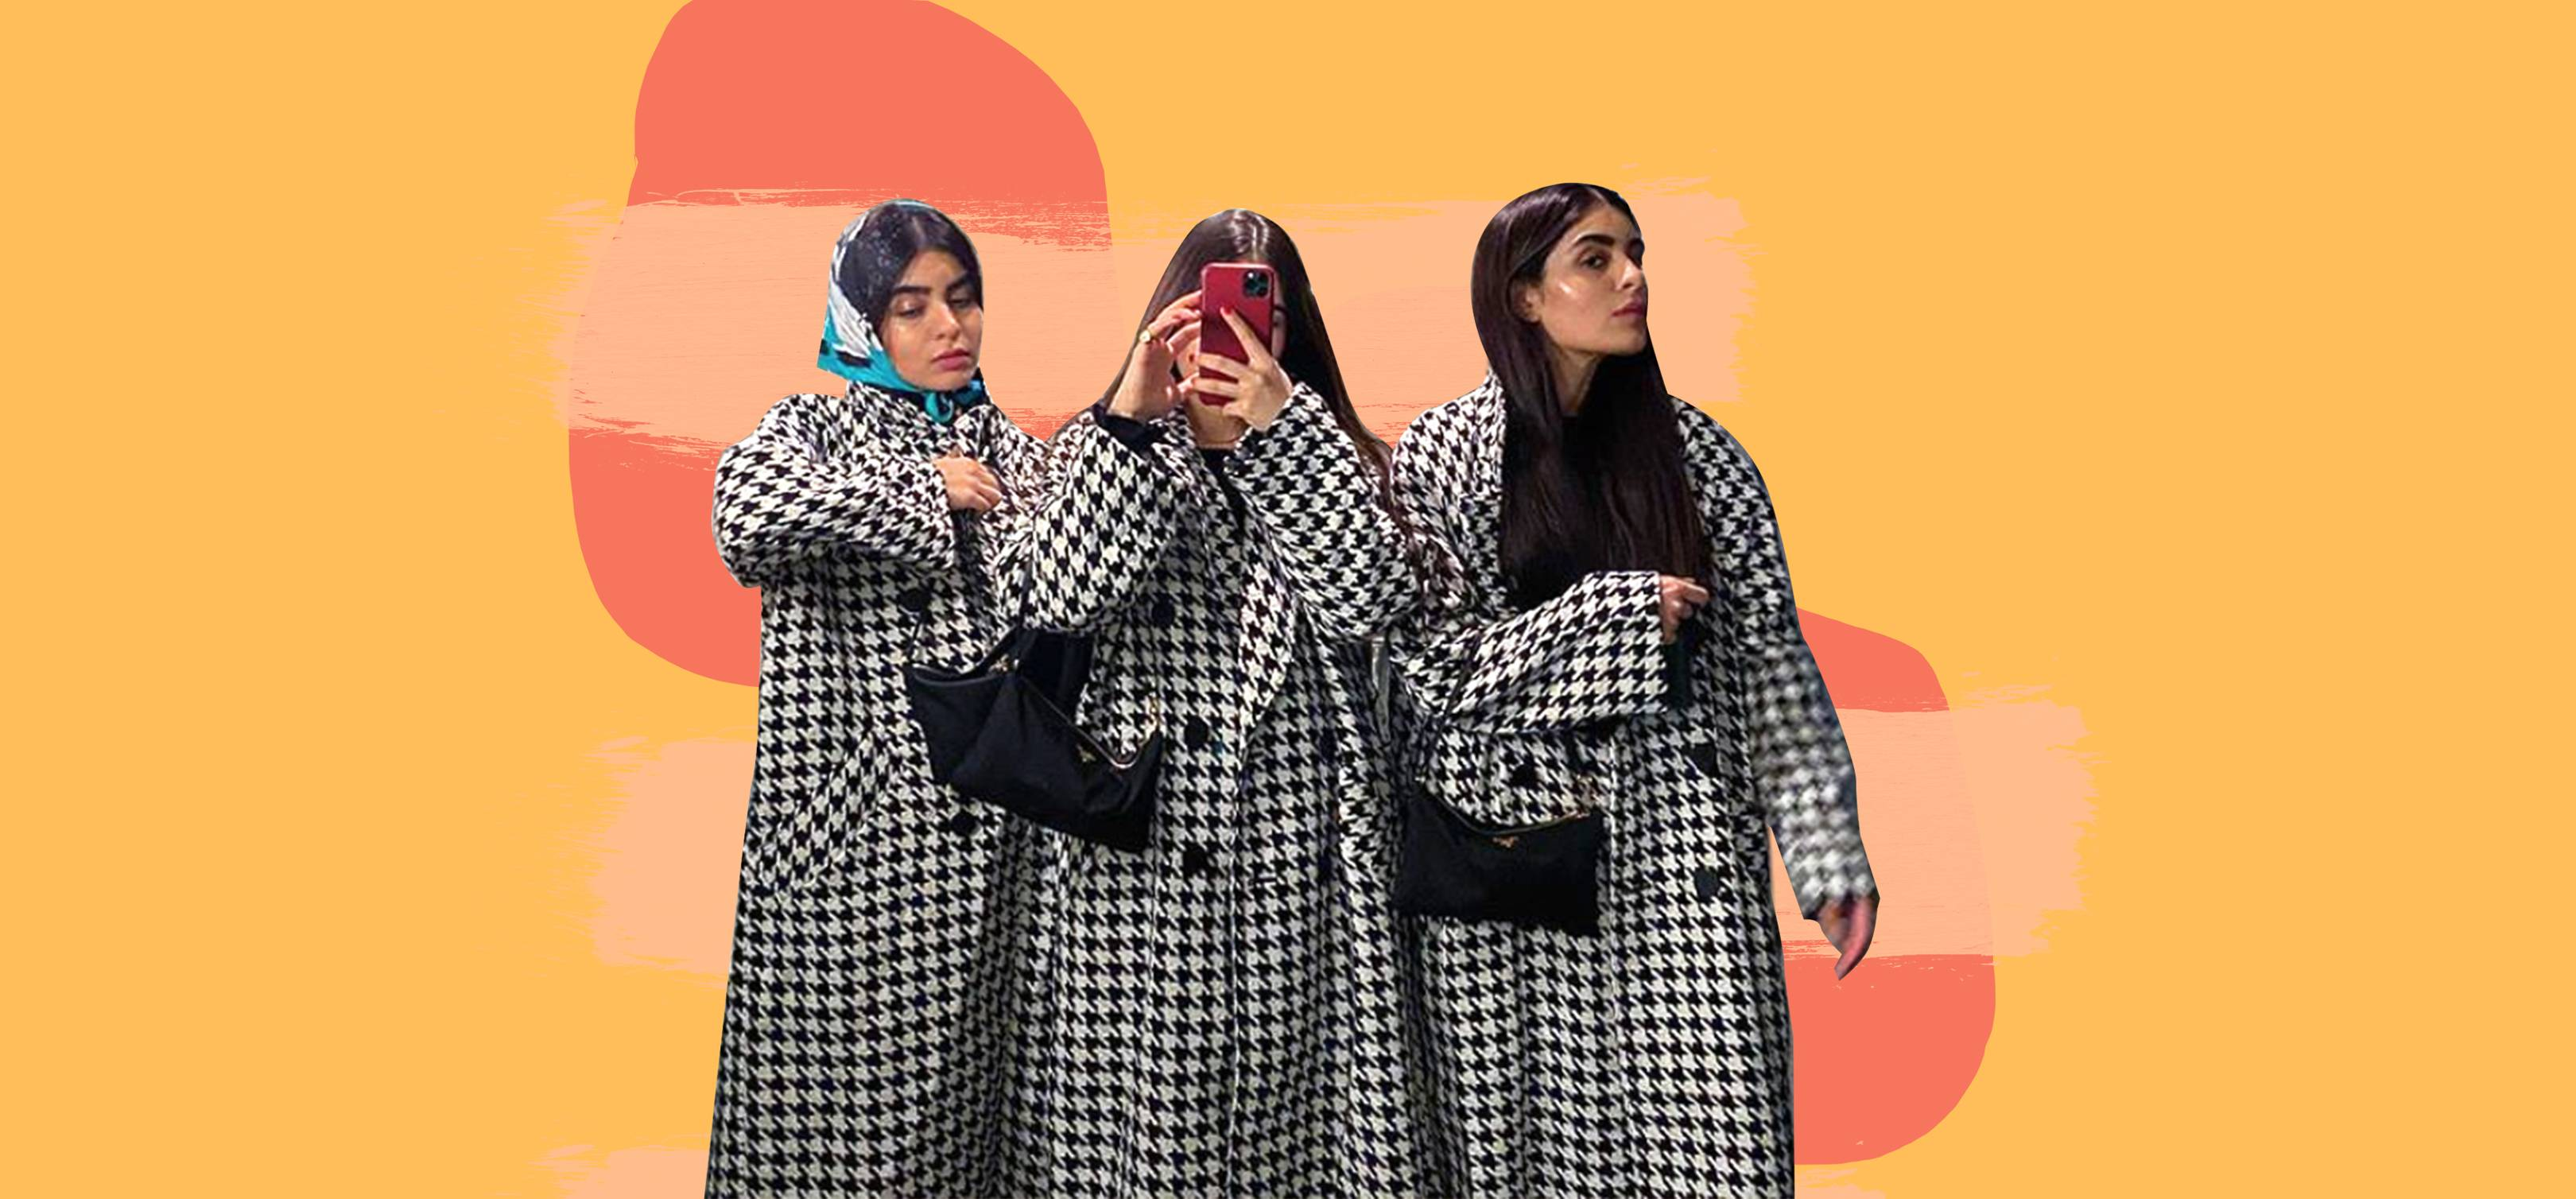 You'll see this H&M dogtooth coat all over influencers on Instagram this season